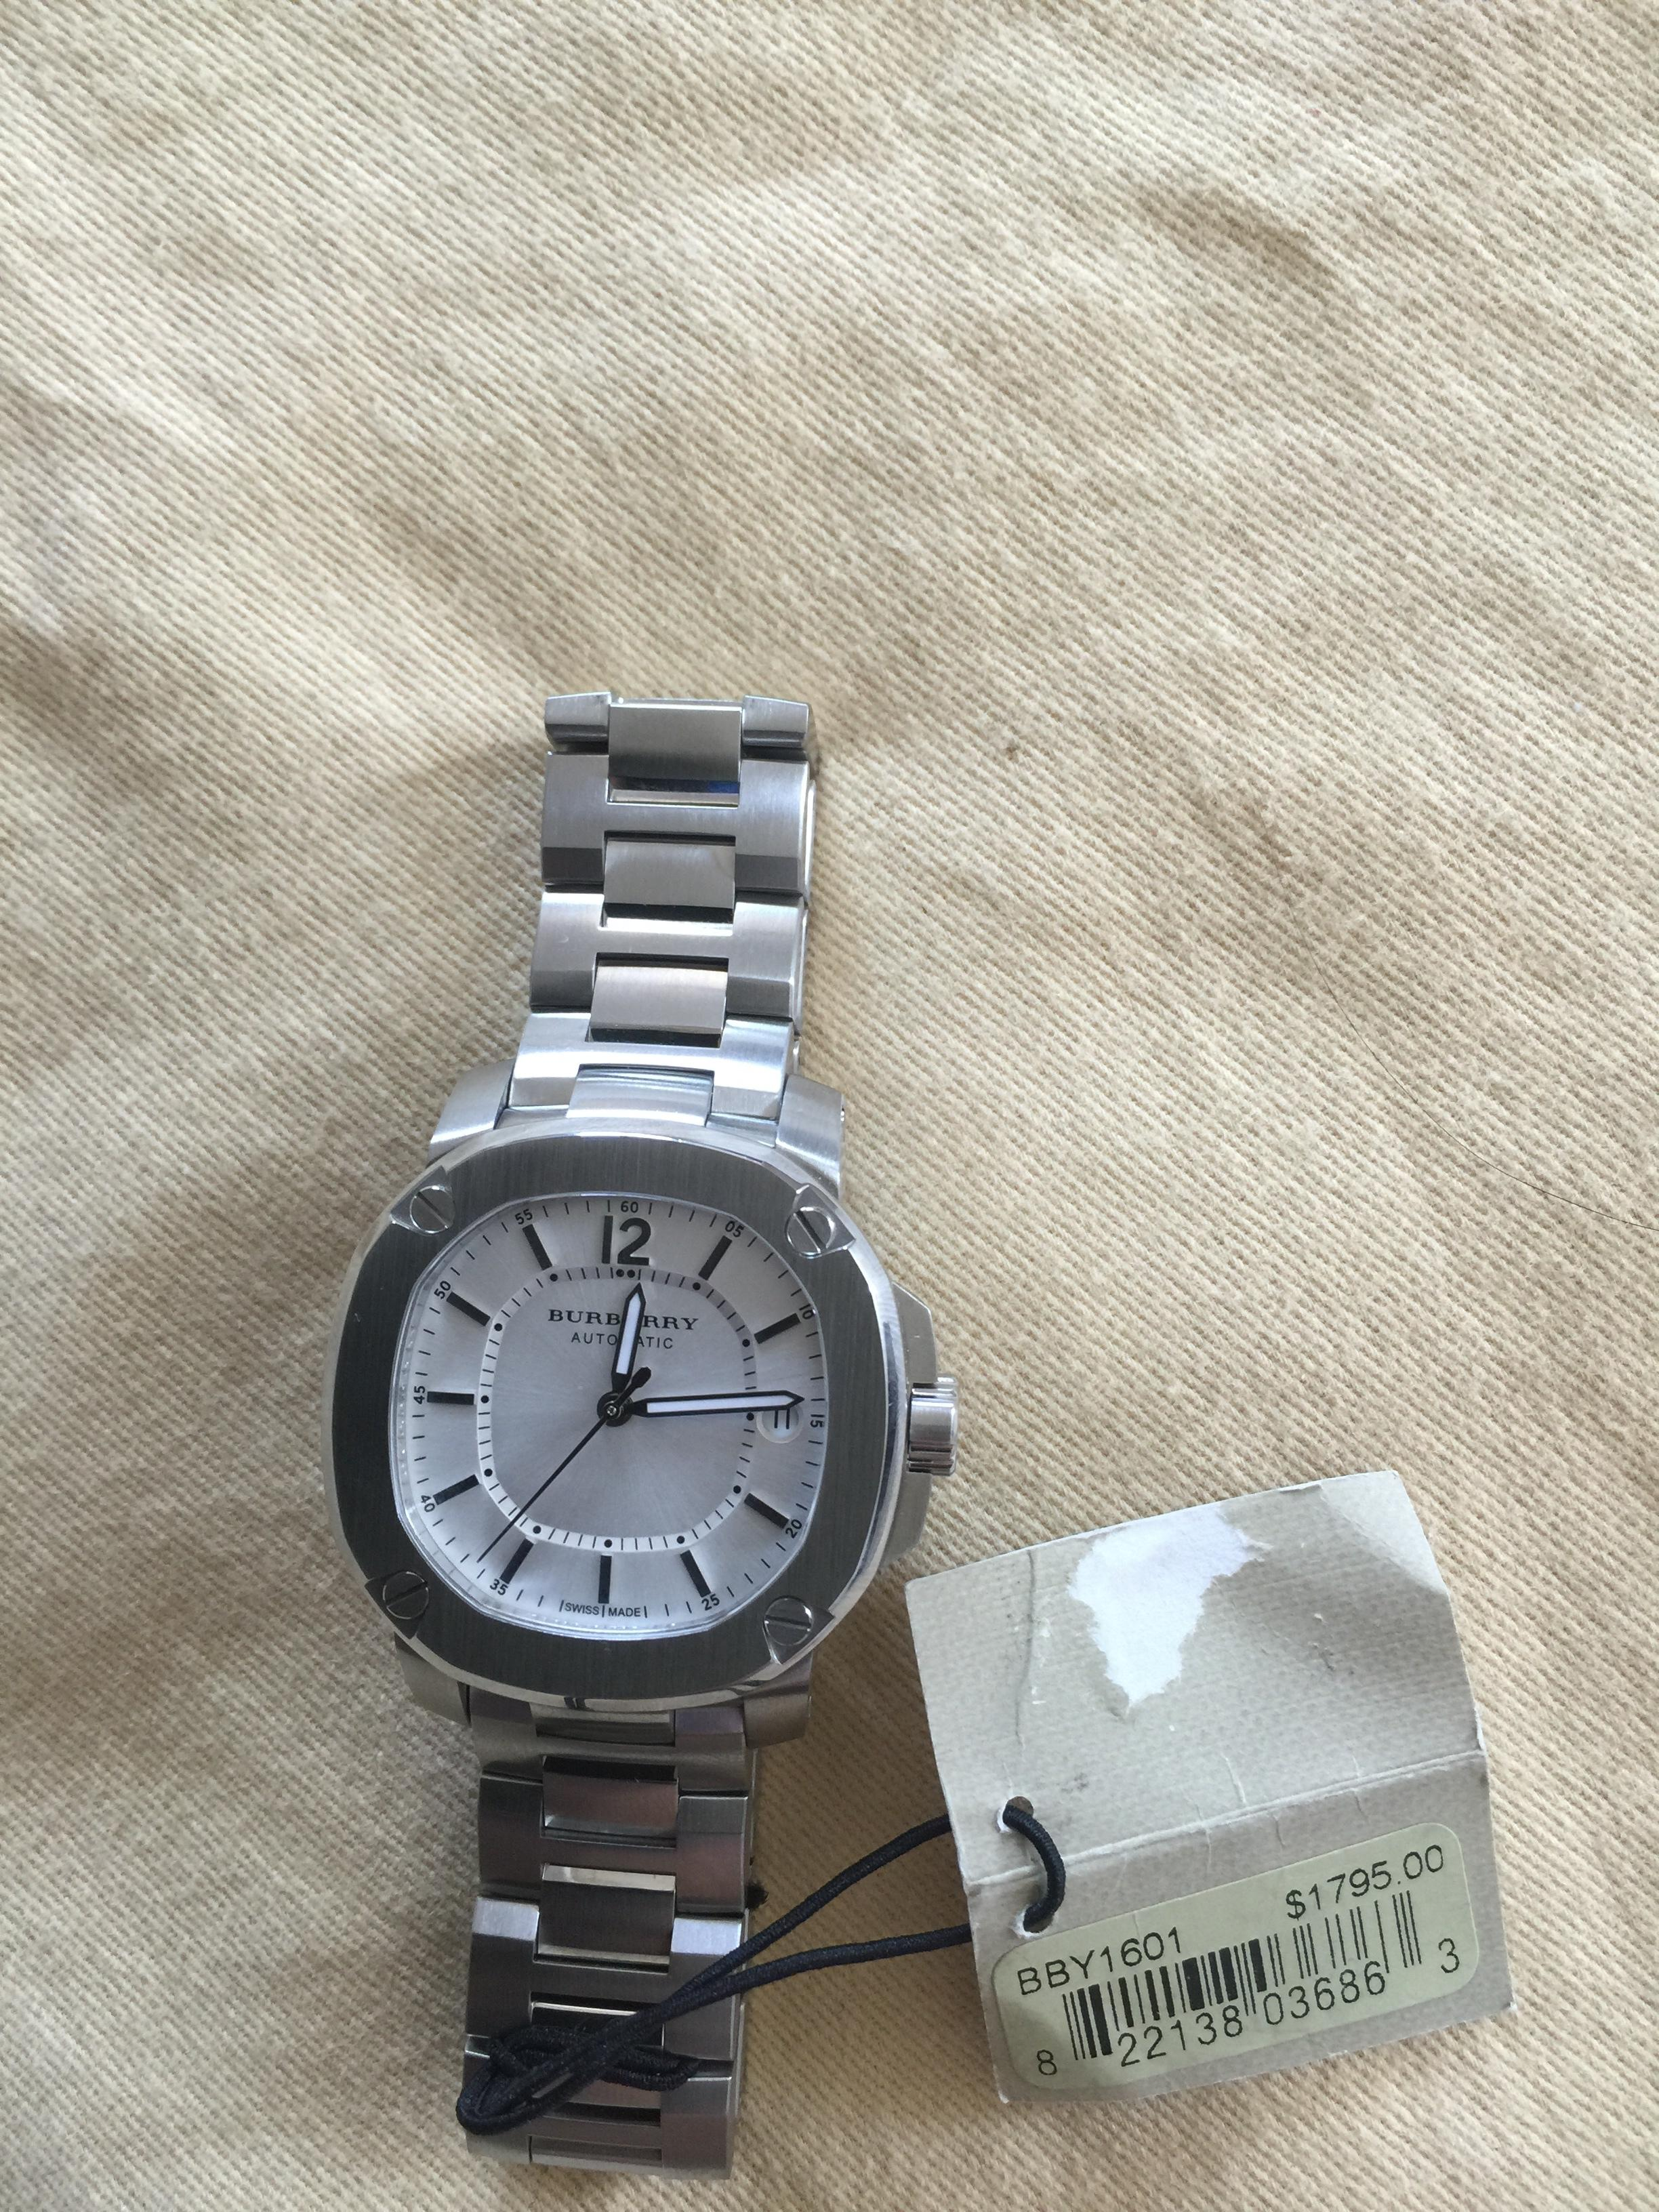 burberry automatic watch price